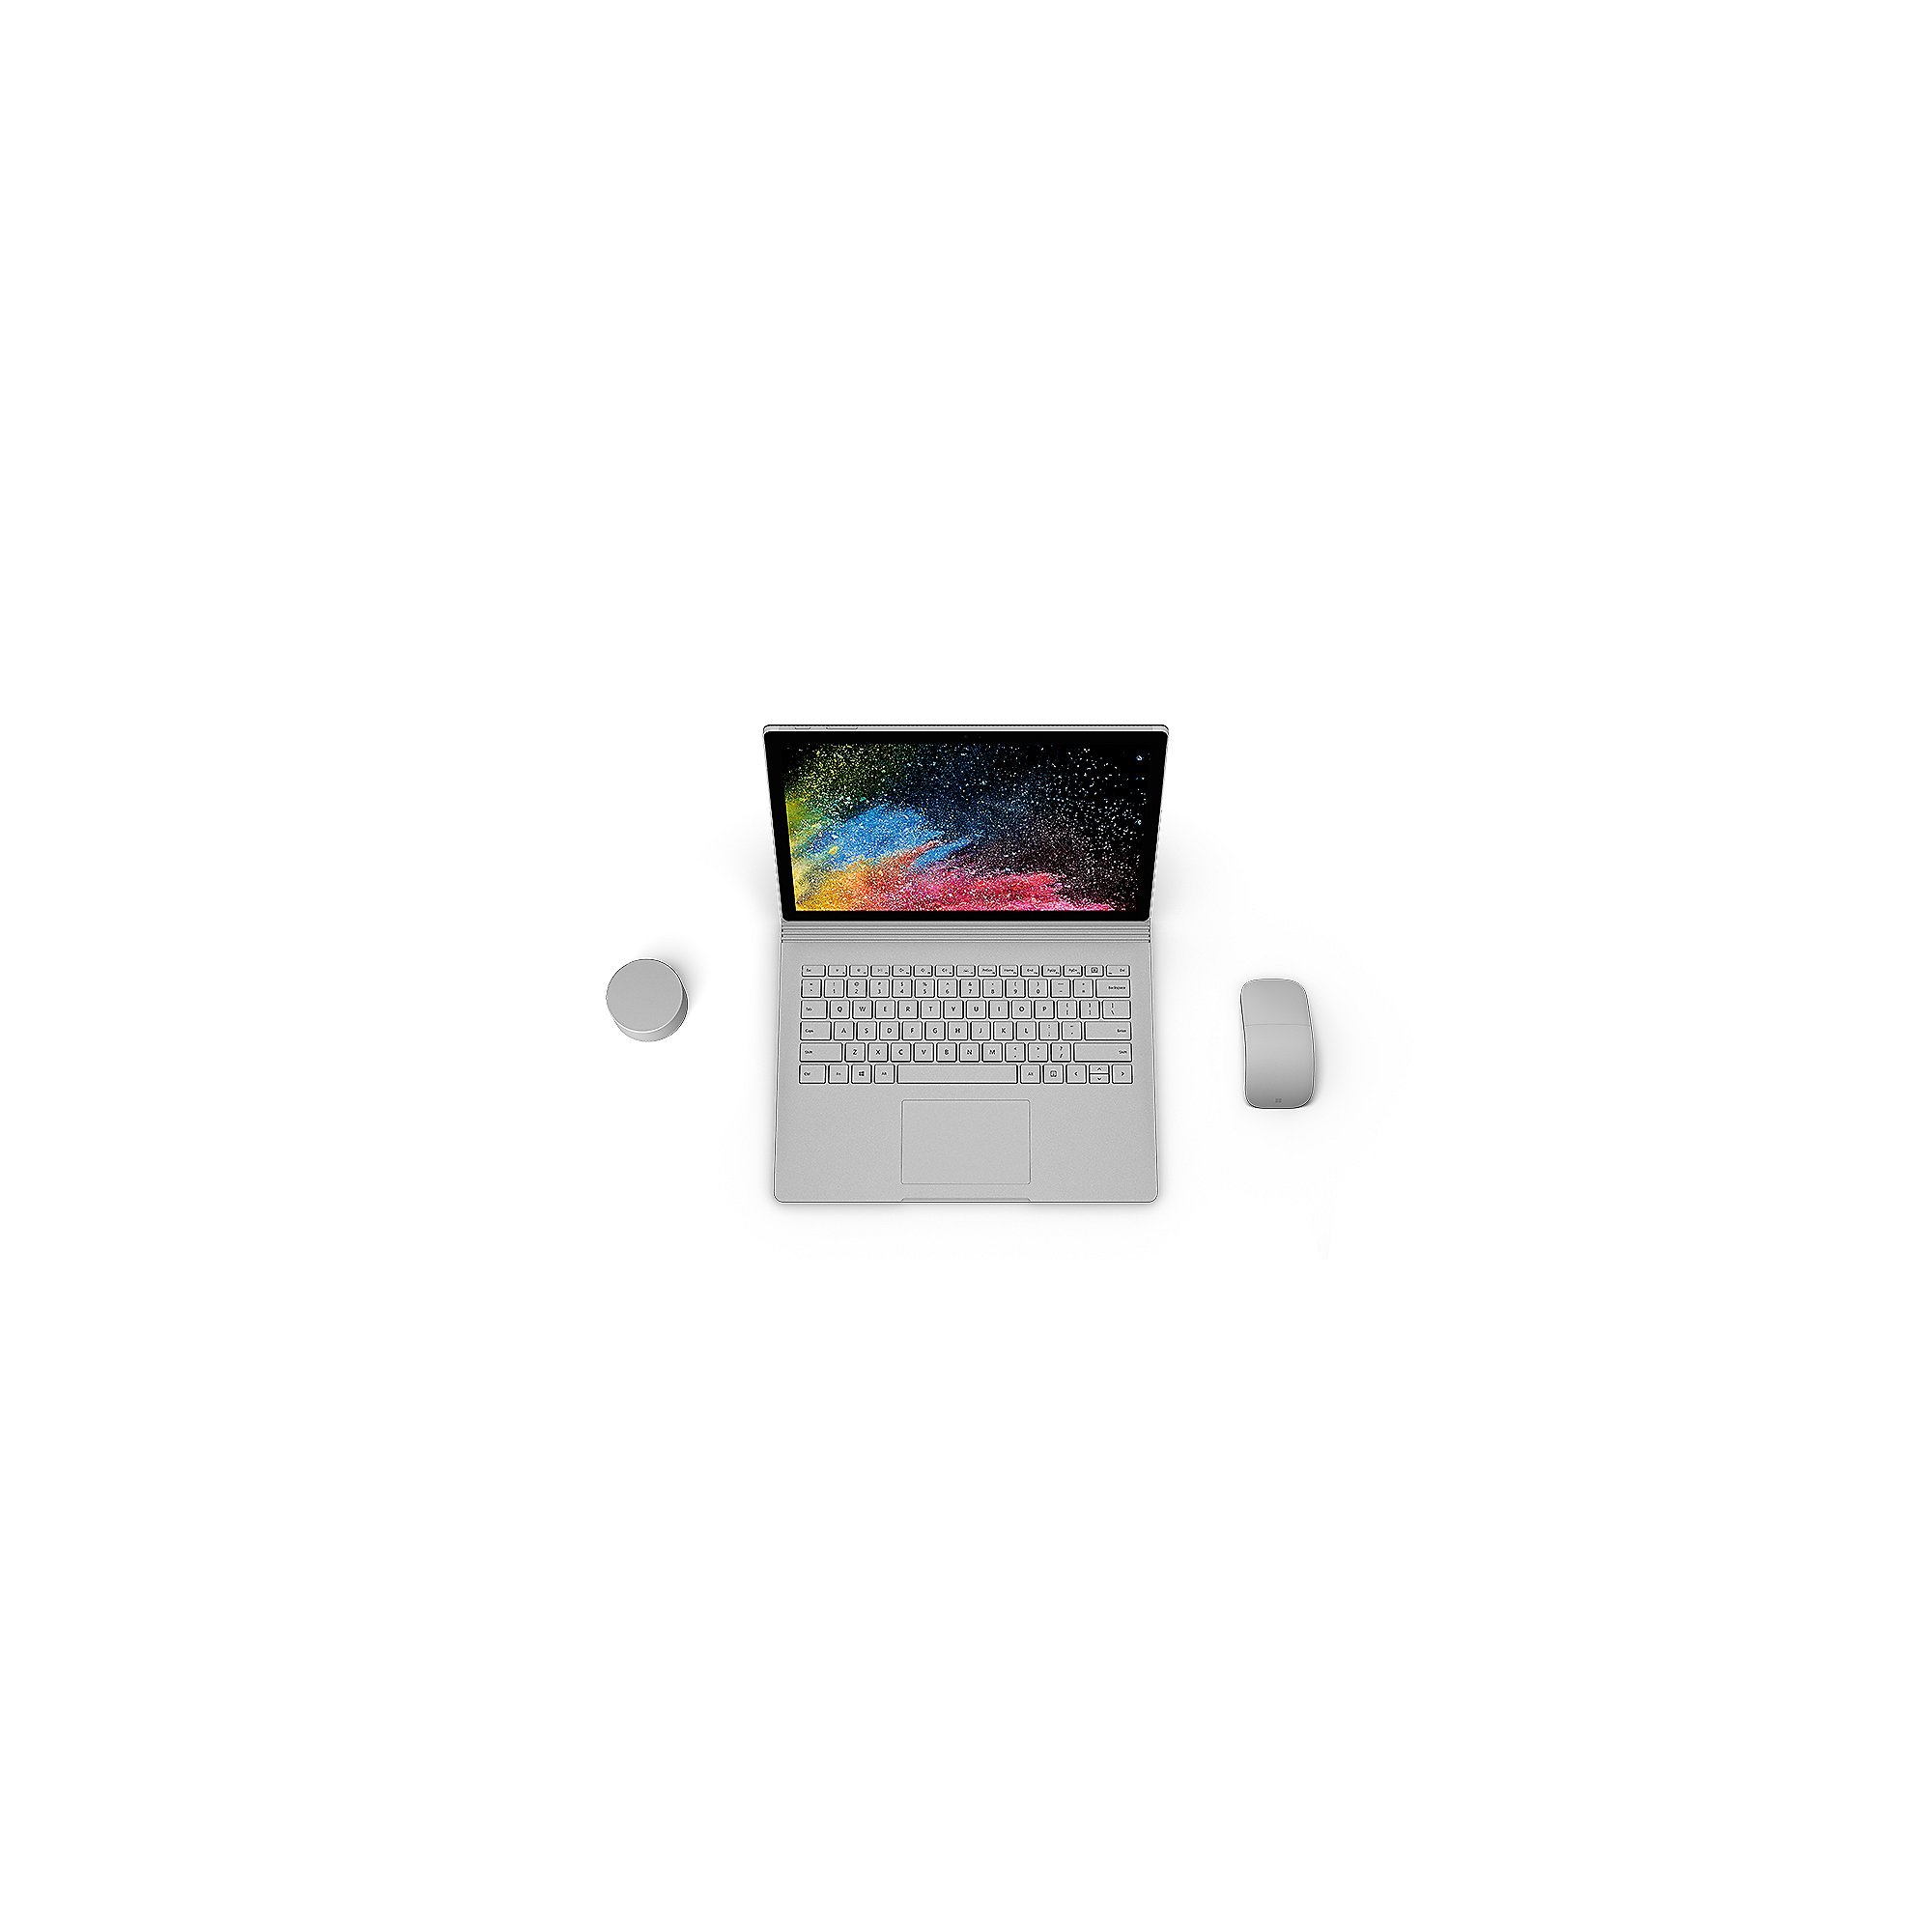 "Surface Book 2 HN4-00004 i7-8650U 8GB/256GB SSD 13"" QHD+ 2in1 GTX 1050 W10P"